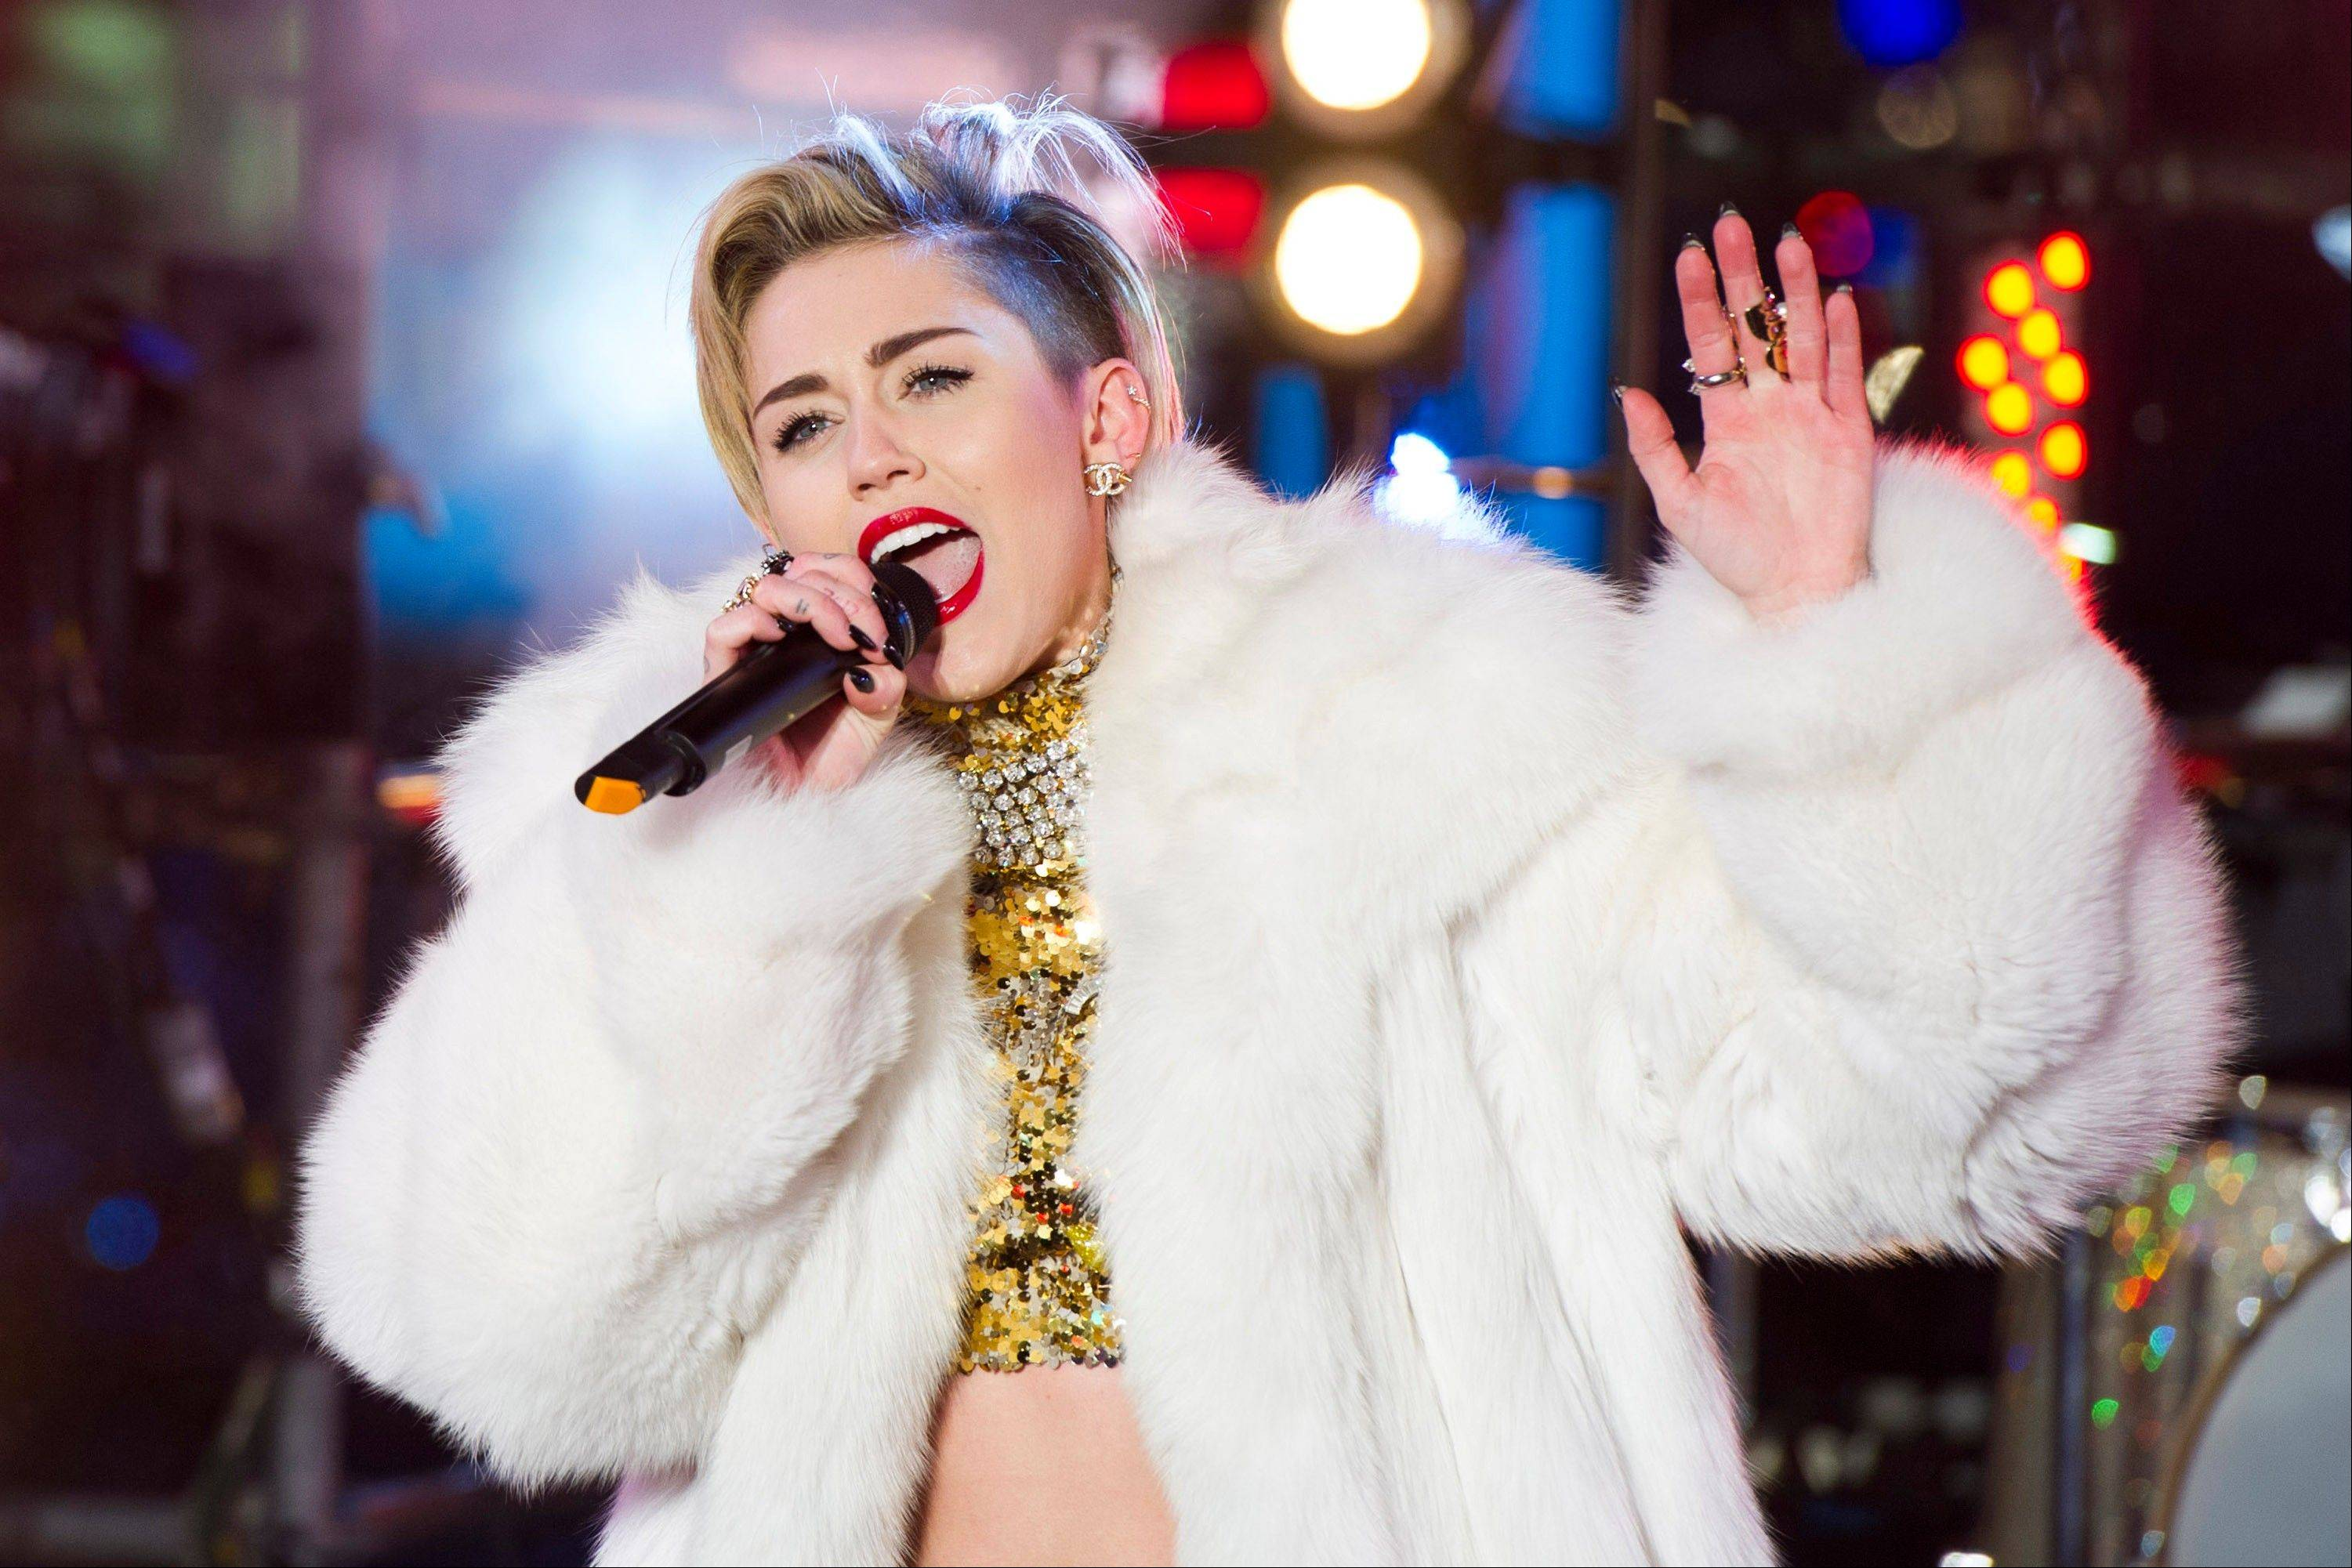 """Ren and Stimpy"" creator John Kricfalusi and contemporary artist Ben Jones have crafted videos to play during the 38 shows as Miley Cyrus prioritizes singing over dance routines in her new tour."